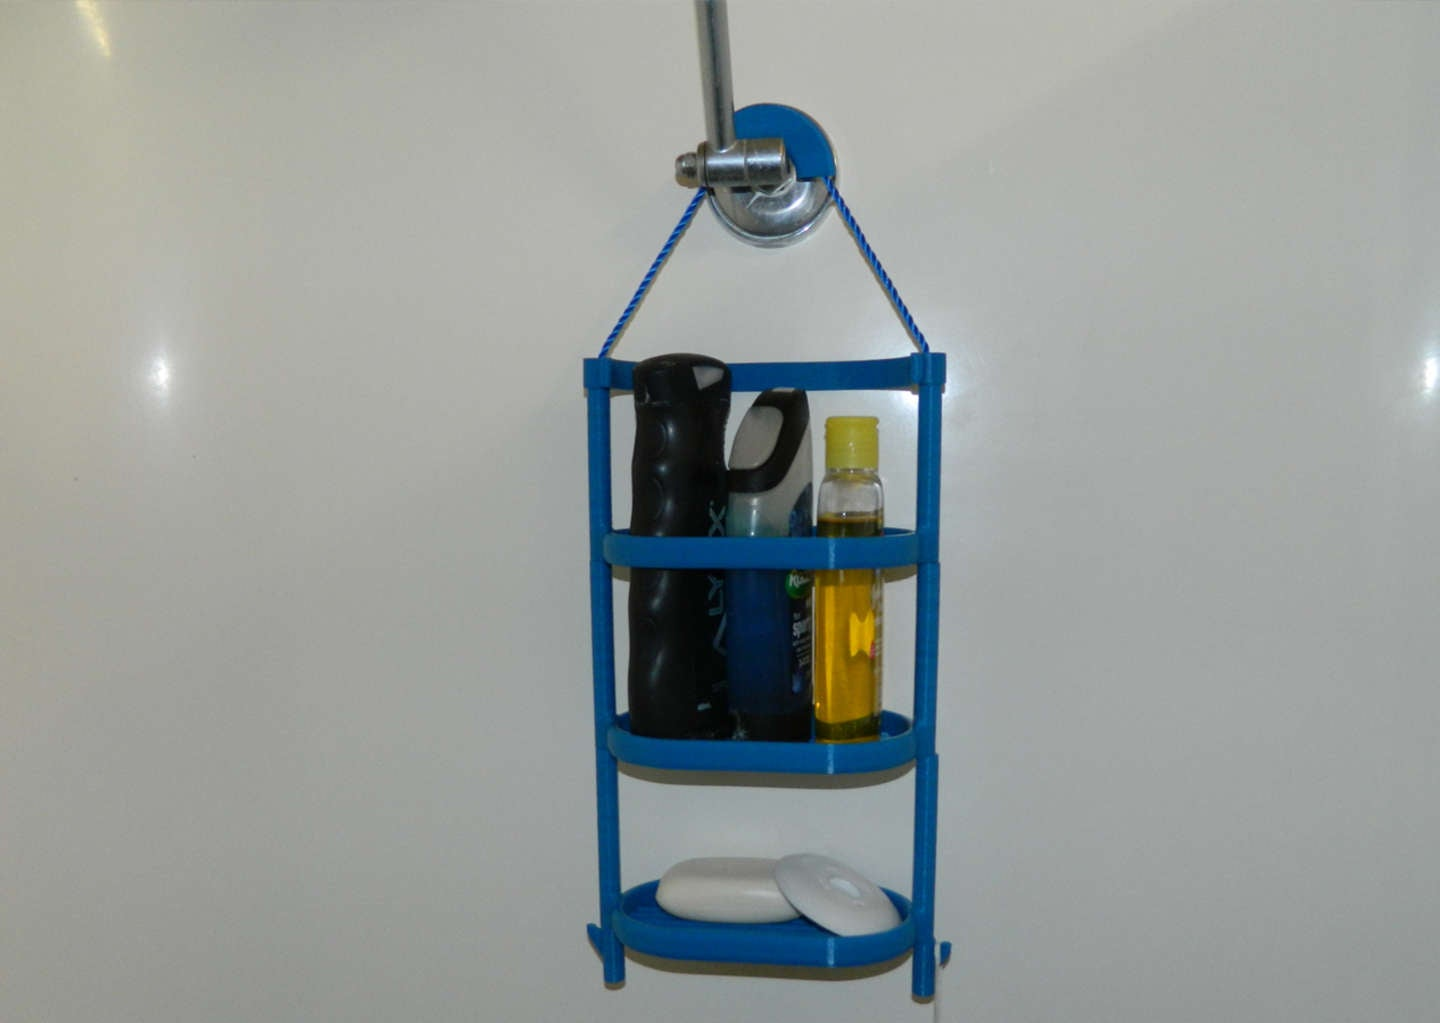 3D printed shower caddy